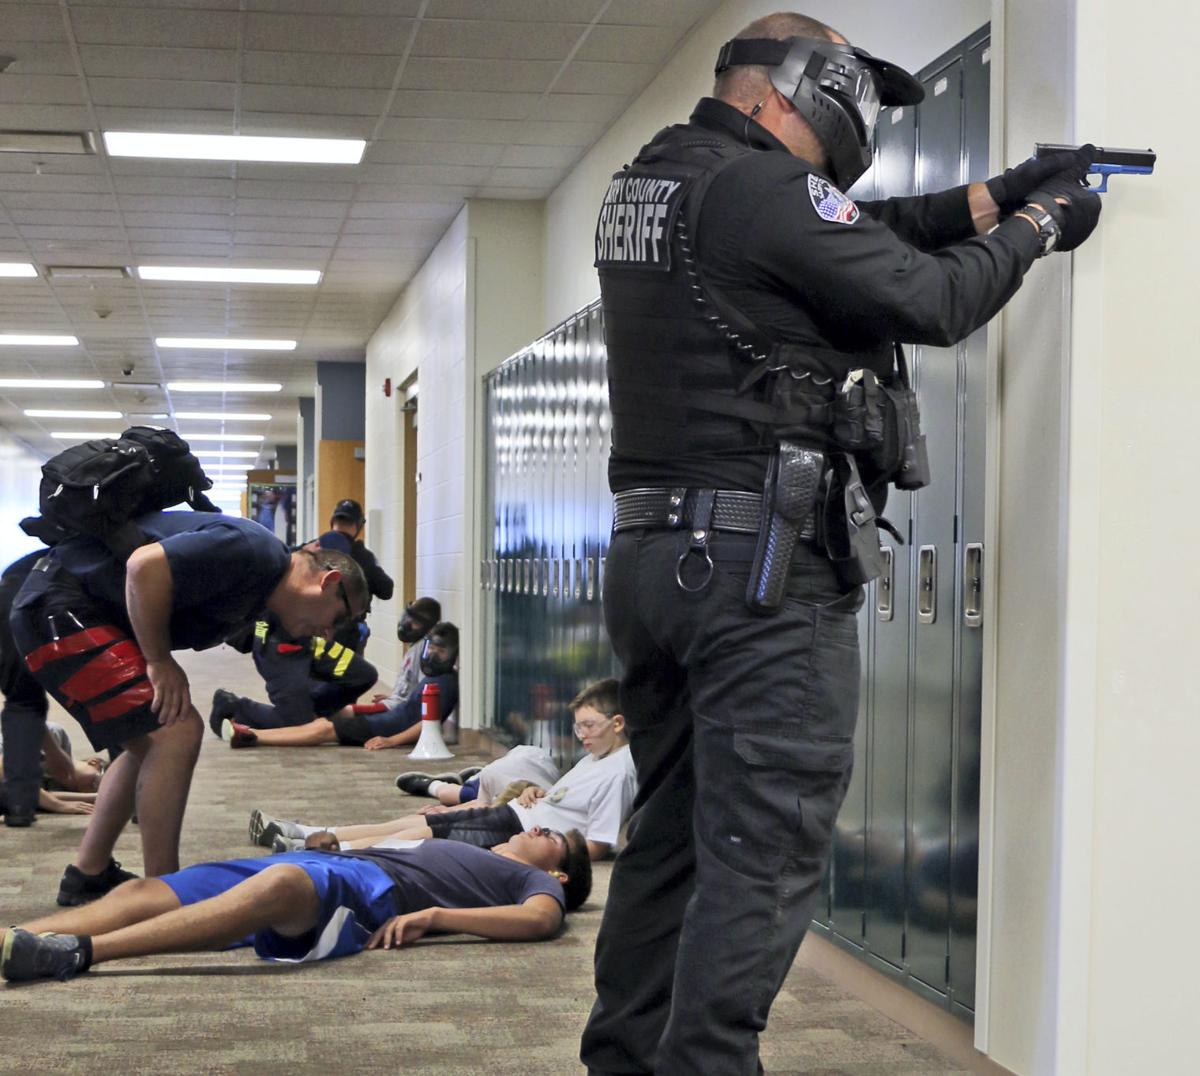 School Shooting Editorial: Rescue Task Force Trains For Active Shooter Incidents